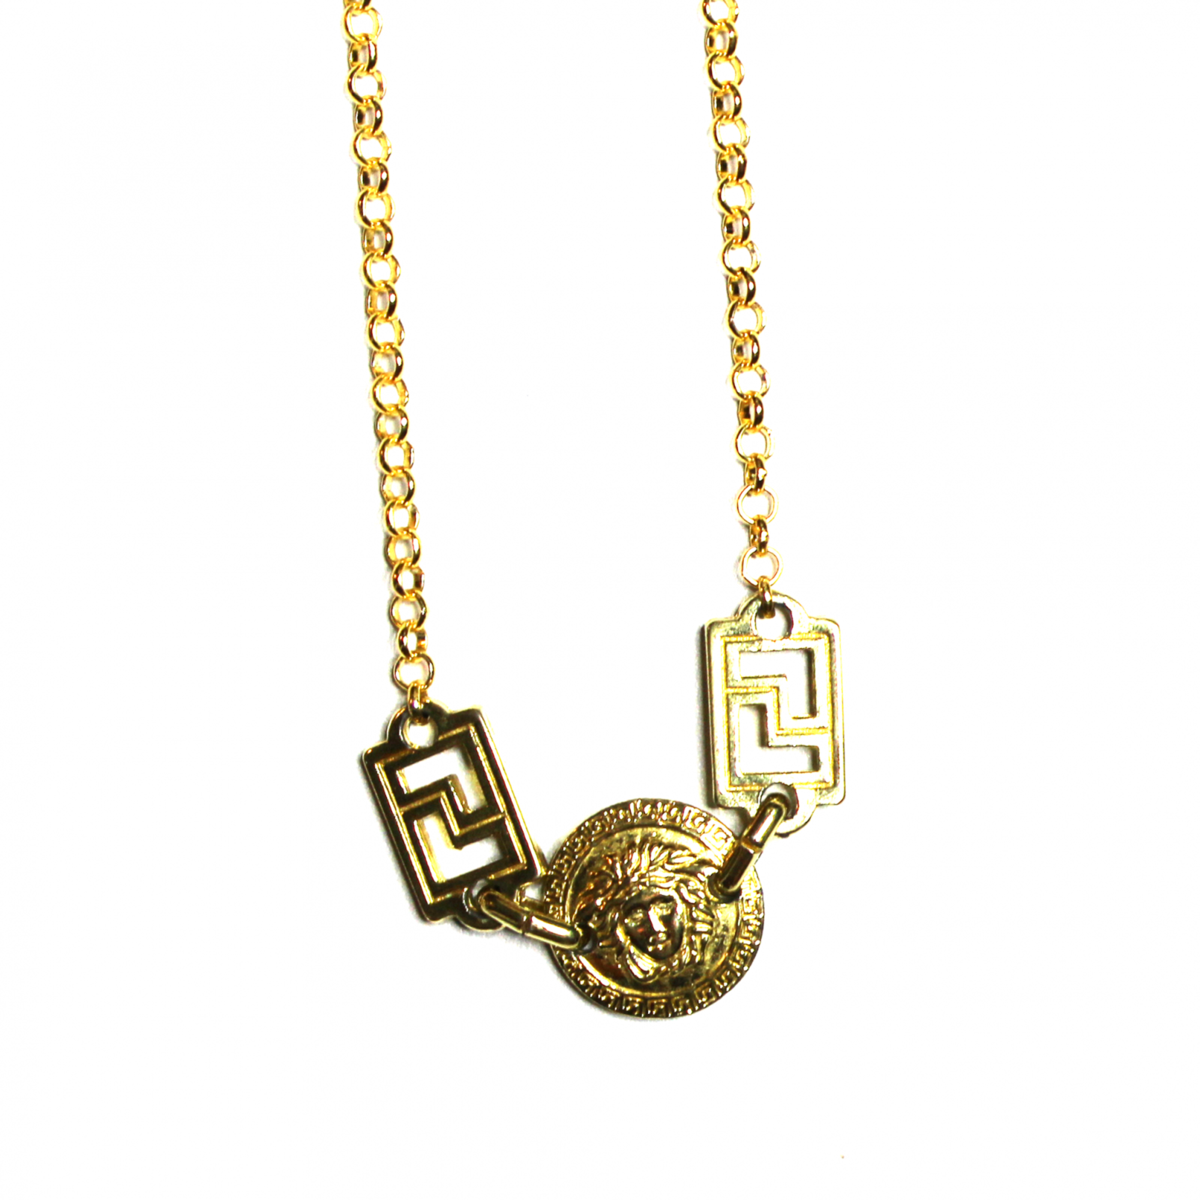 Small Gold Gianni Versace Double Sided Medusa Head Coin Chain with Greek  Key Accents.